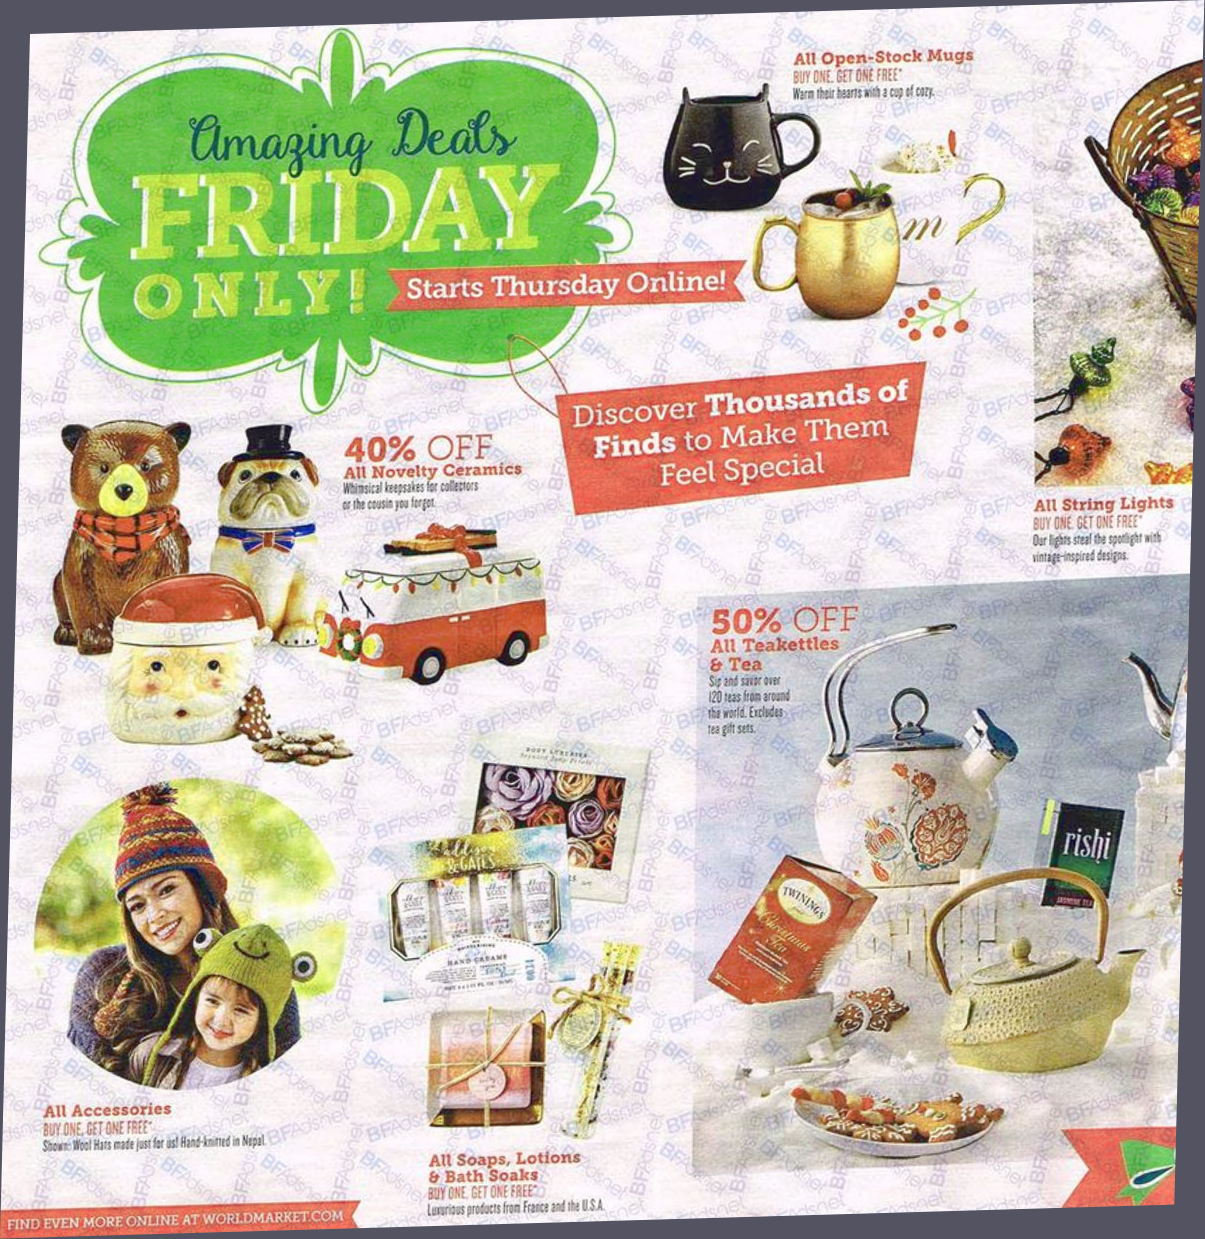 Cost Plus World Market Black Friday 2019 Sale & Ad